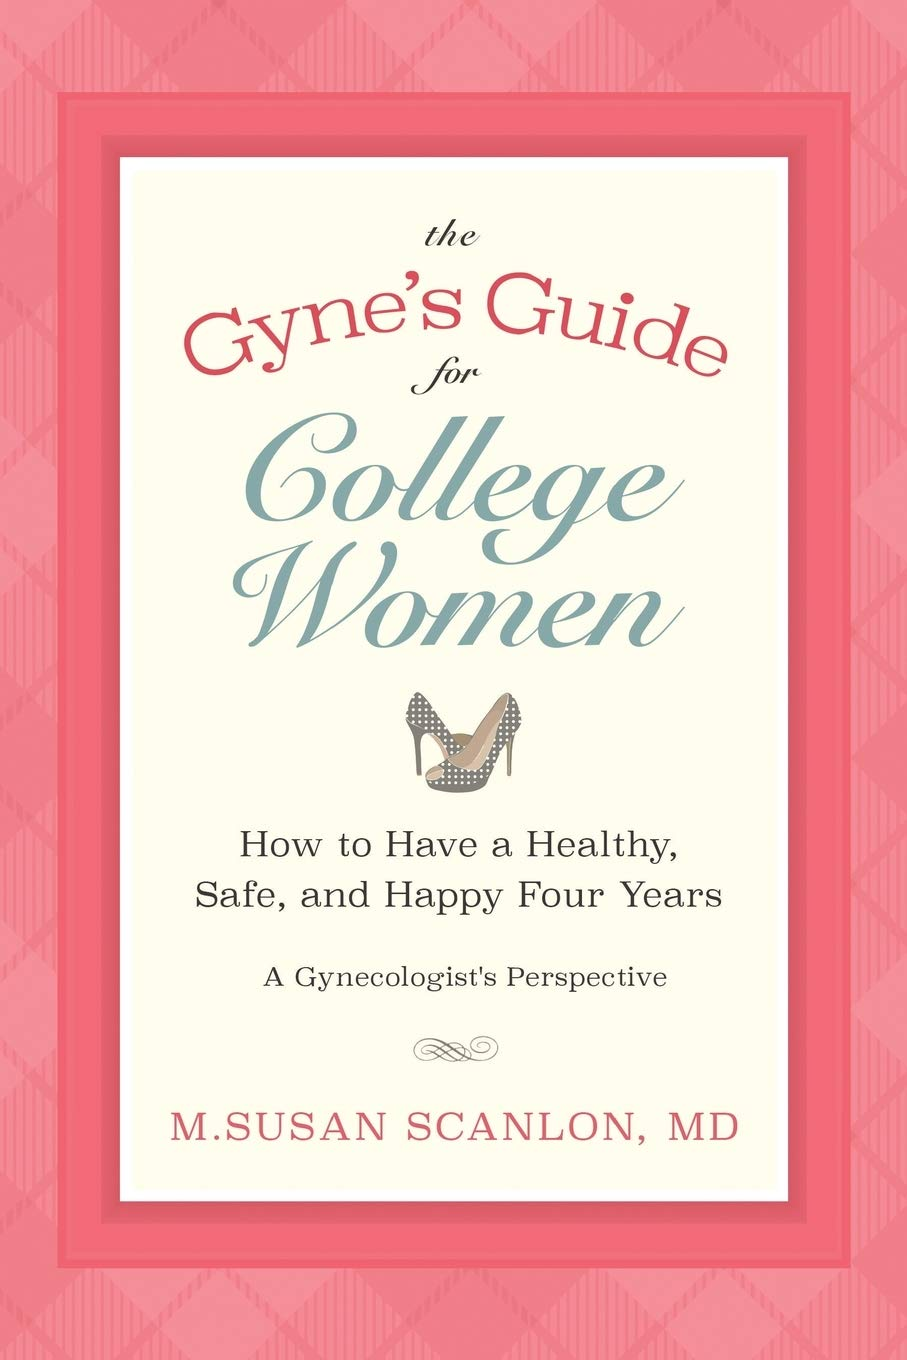 Download The Gyne's Guide For College Women: How To Have A Healthy, Safe, And Happy Four Years. A Gynecologist's Perspective 